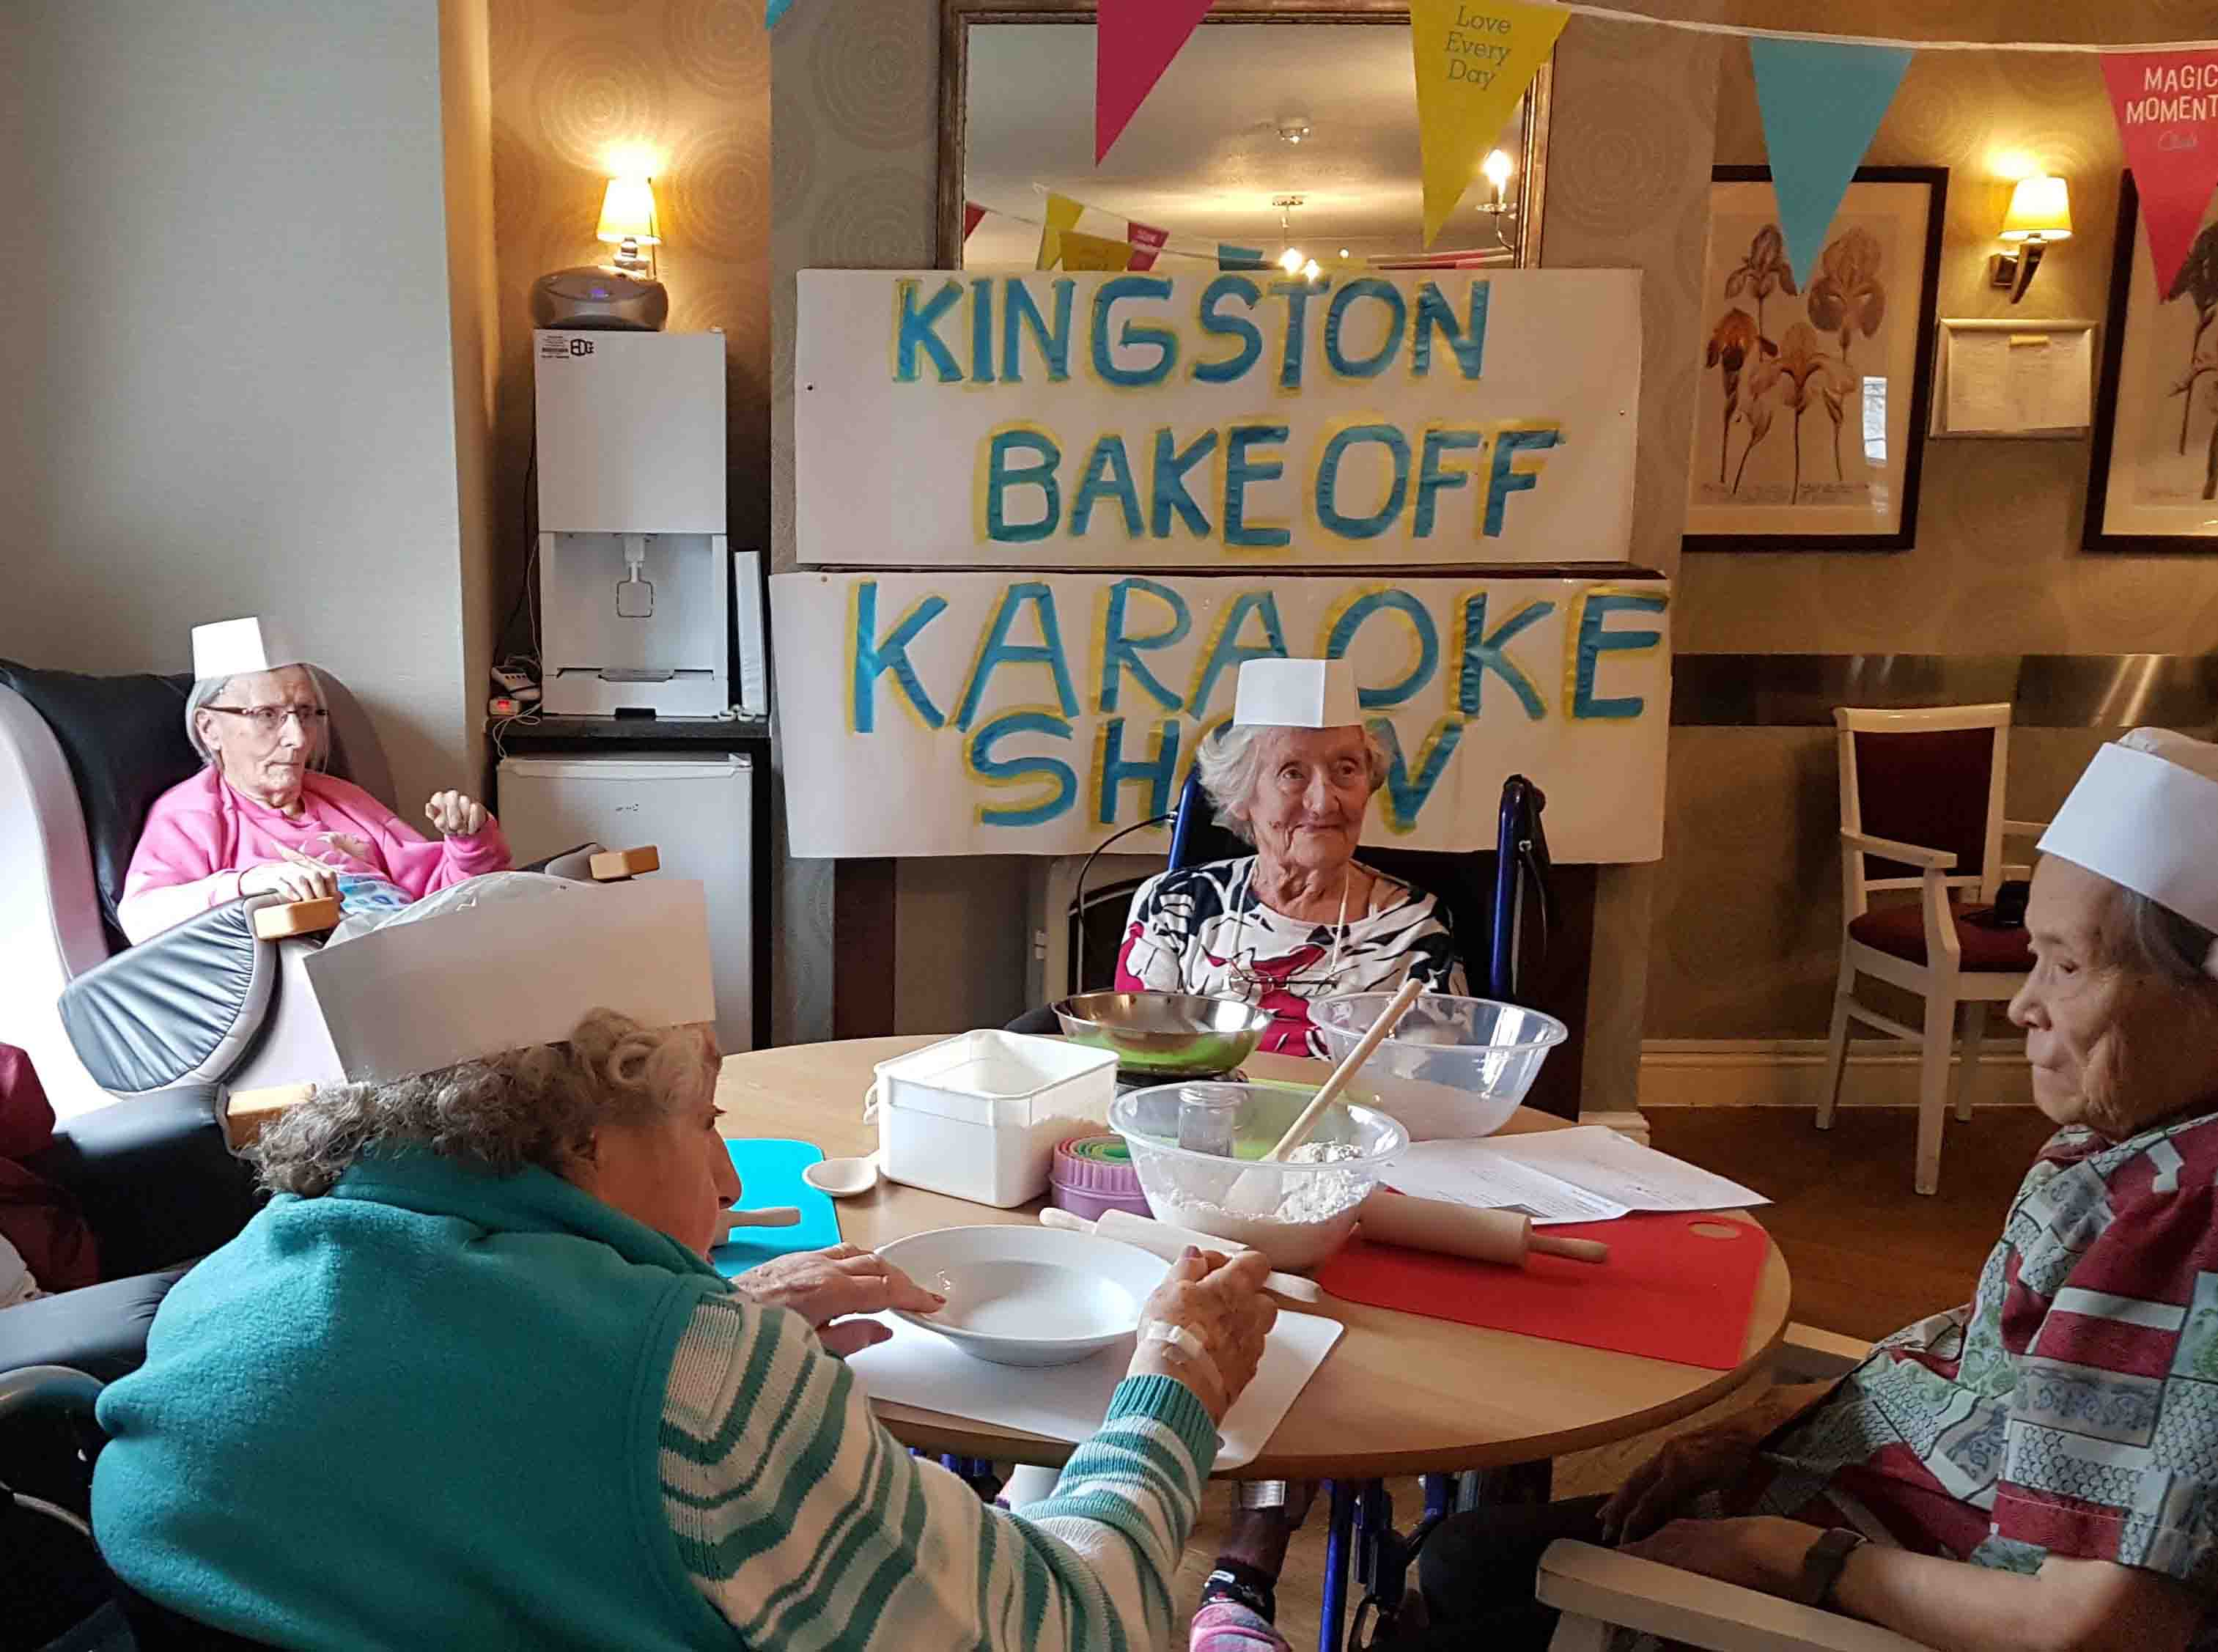 Kingston Care Home's Wow Factor 'bake off' and karaoke